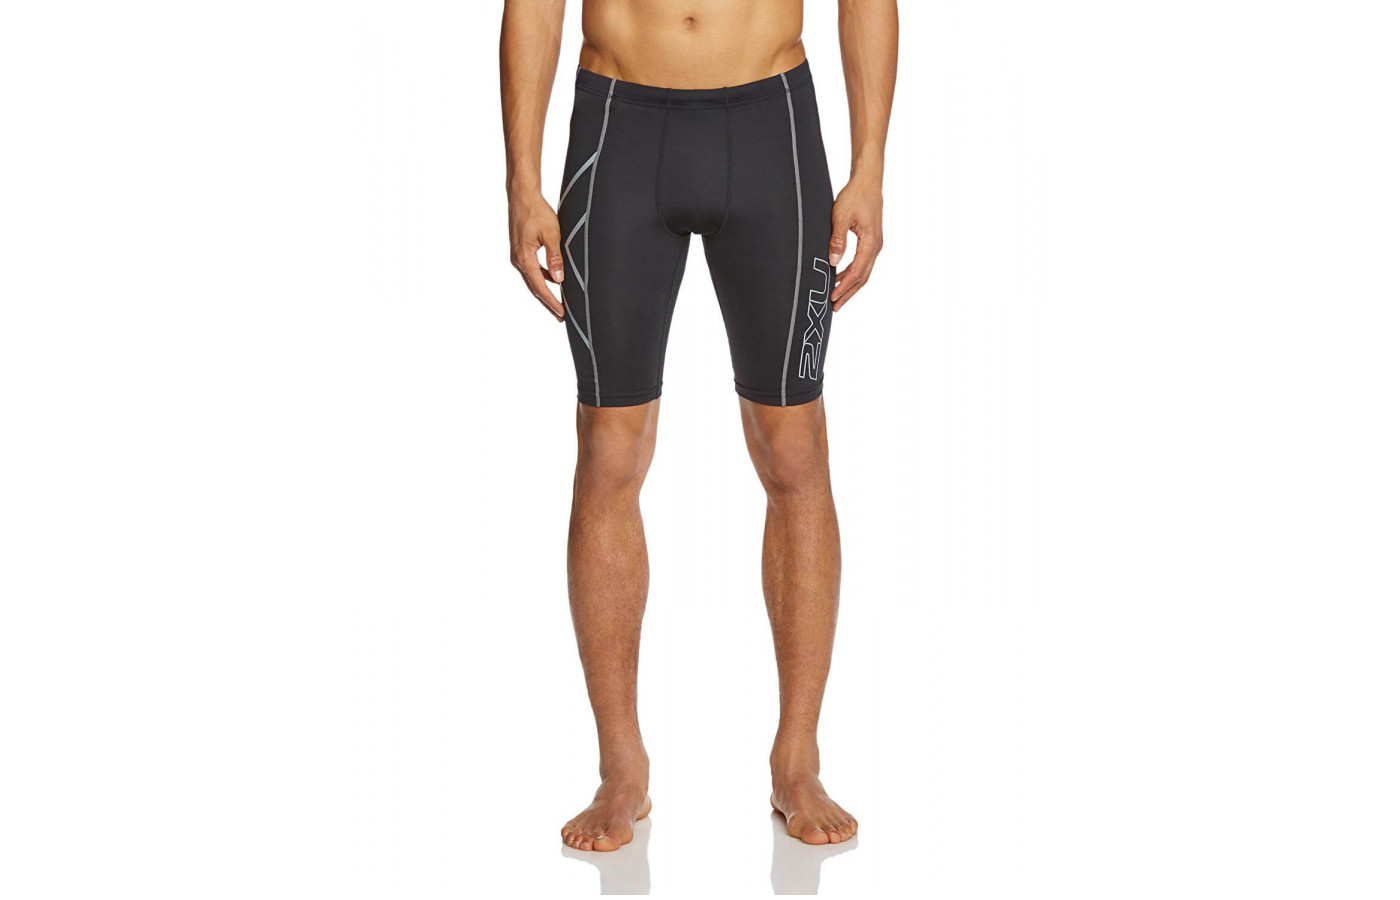 The 2XU Compression Shorts can wick away moisture to prevent skin irritation.